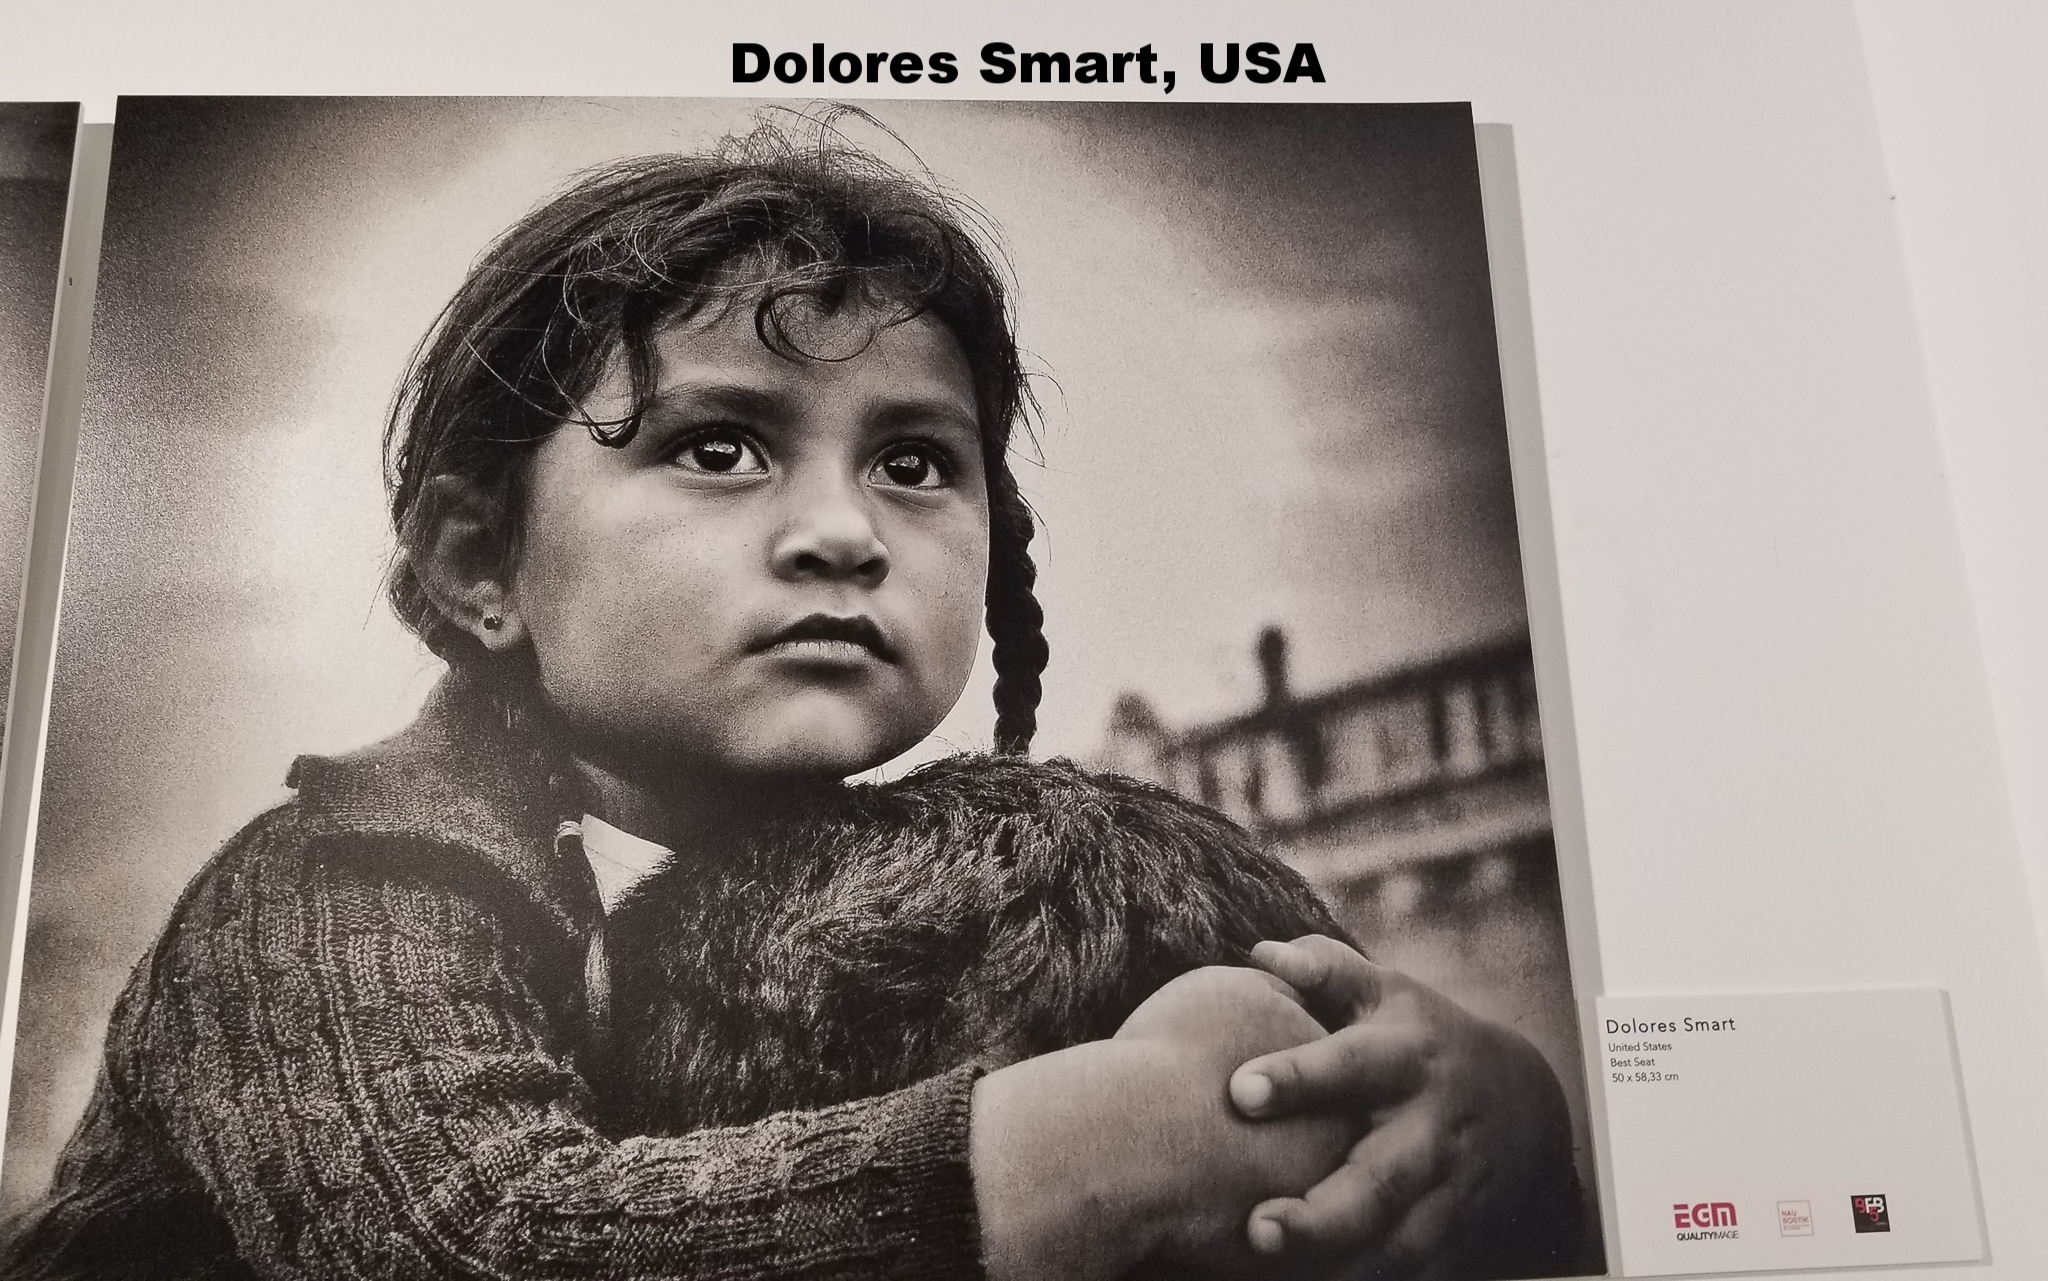 Dolores Smart, United States